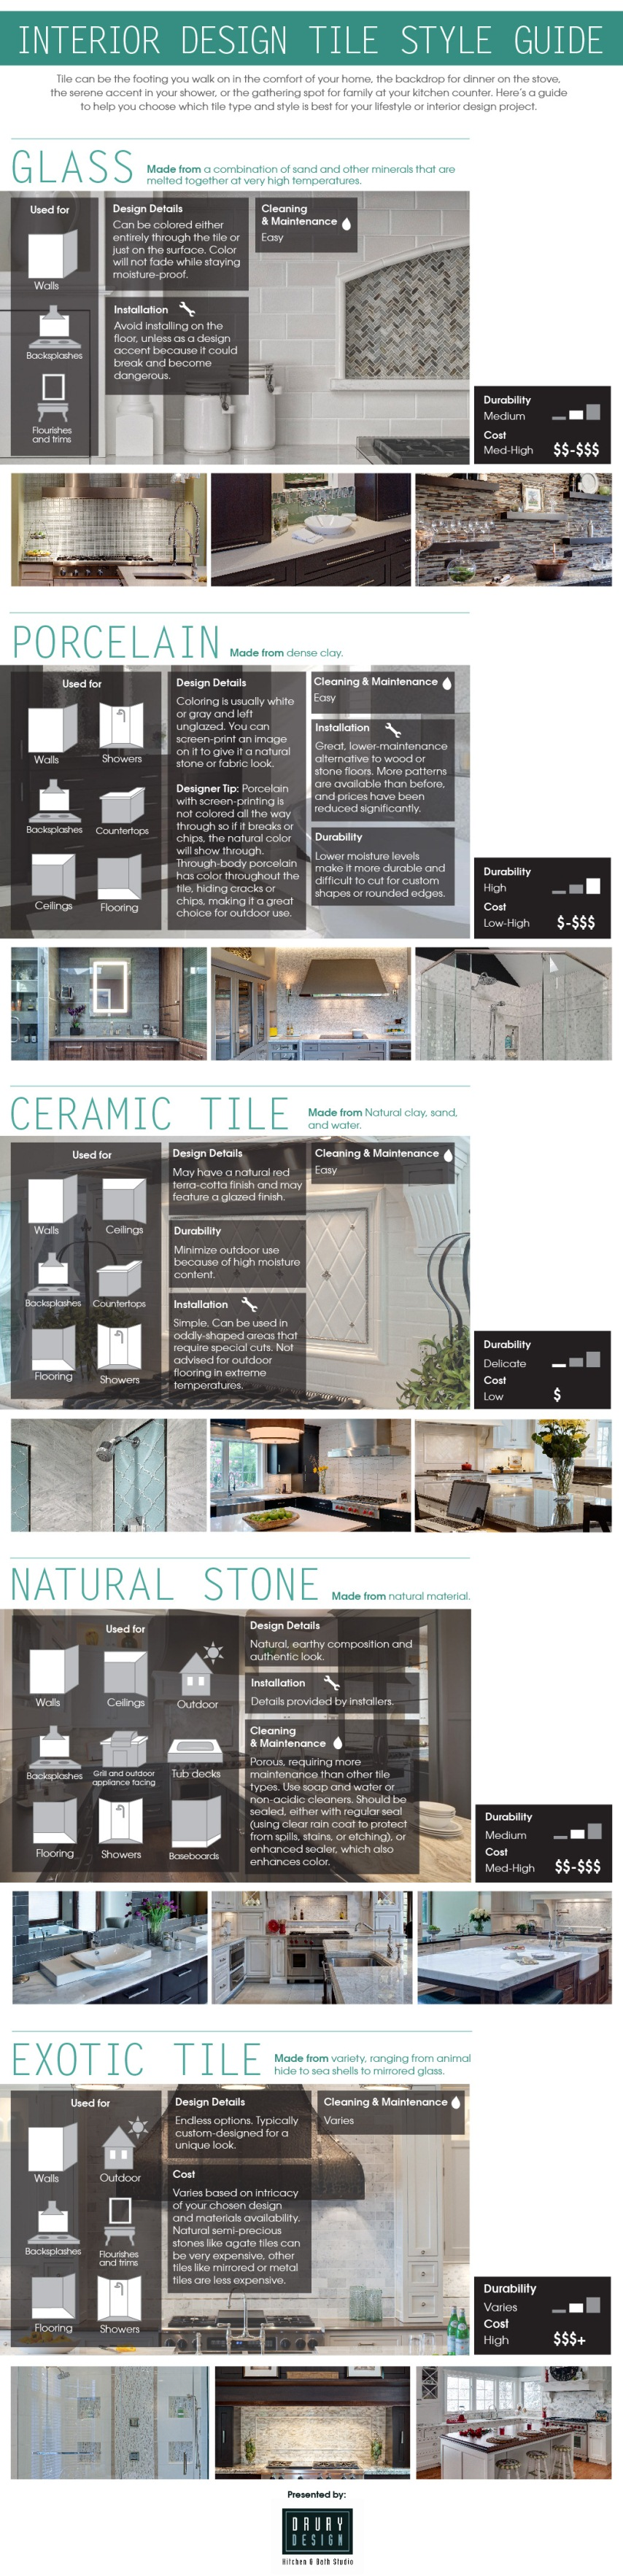 tile-style-guide